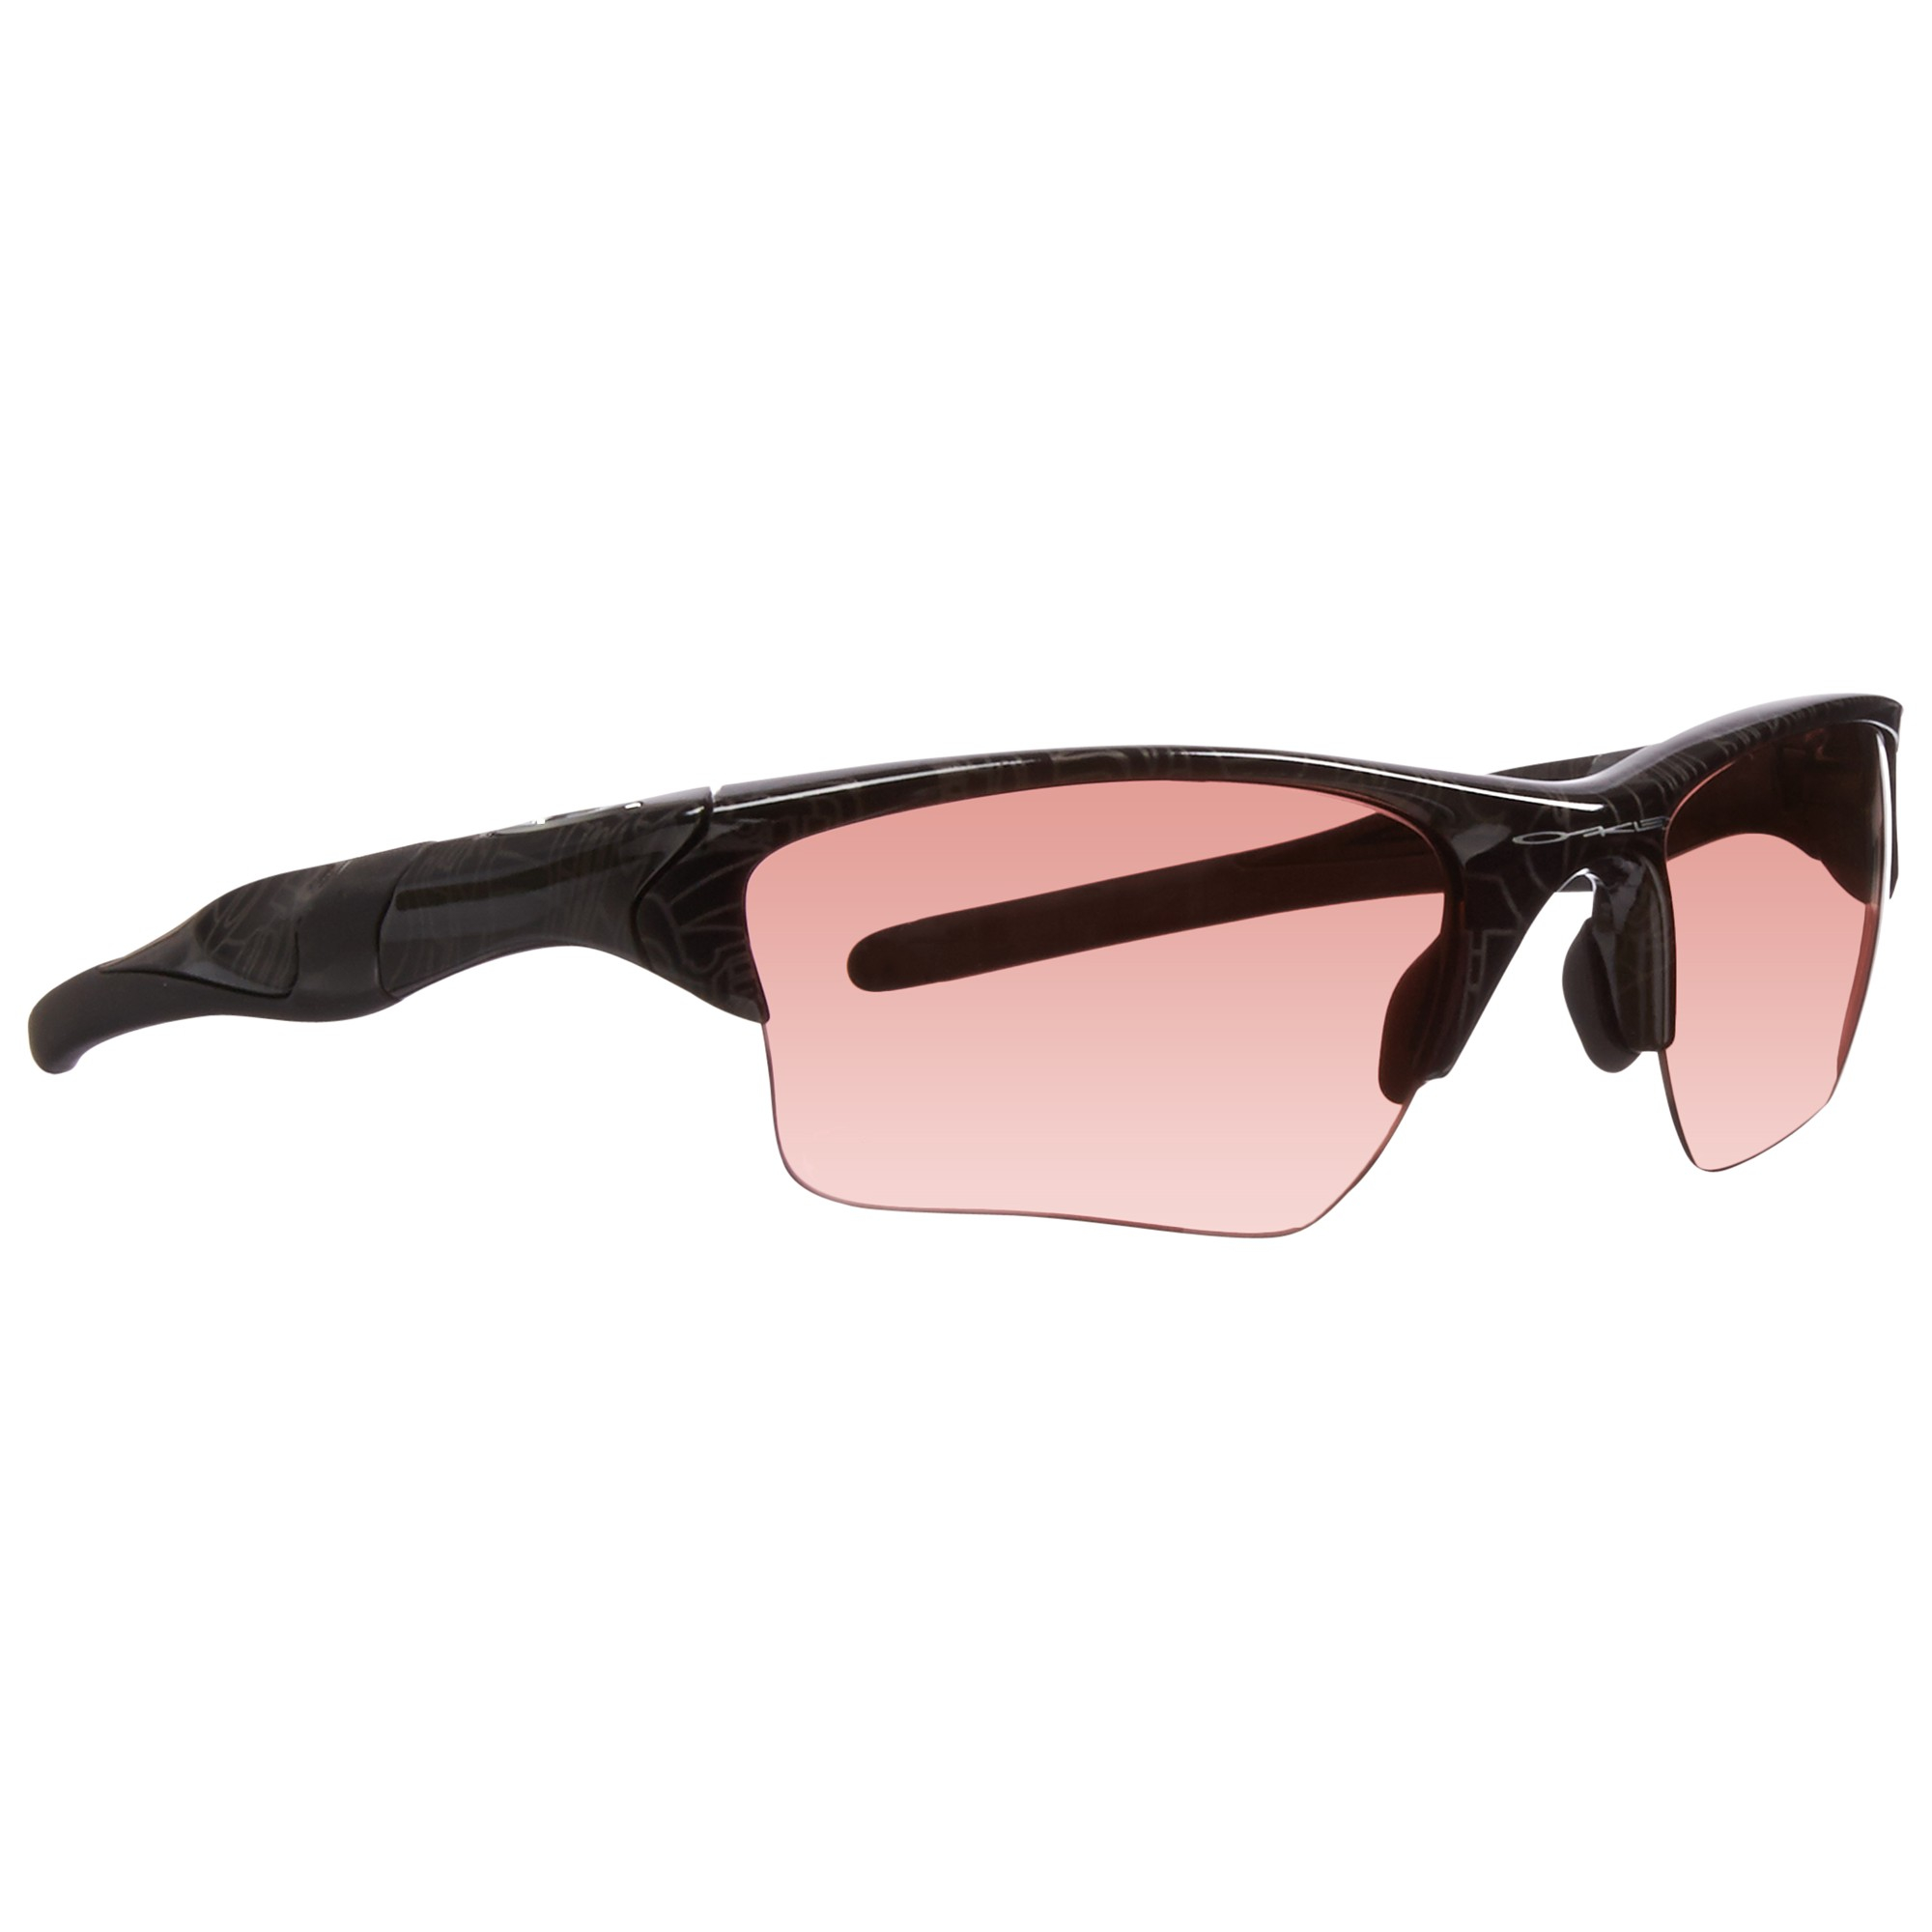 f26a71207d Lyst - Oakley Half Jacket Wrap Around Sports Sunglasses in Pink